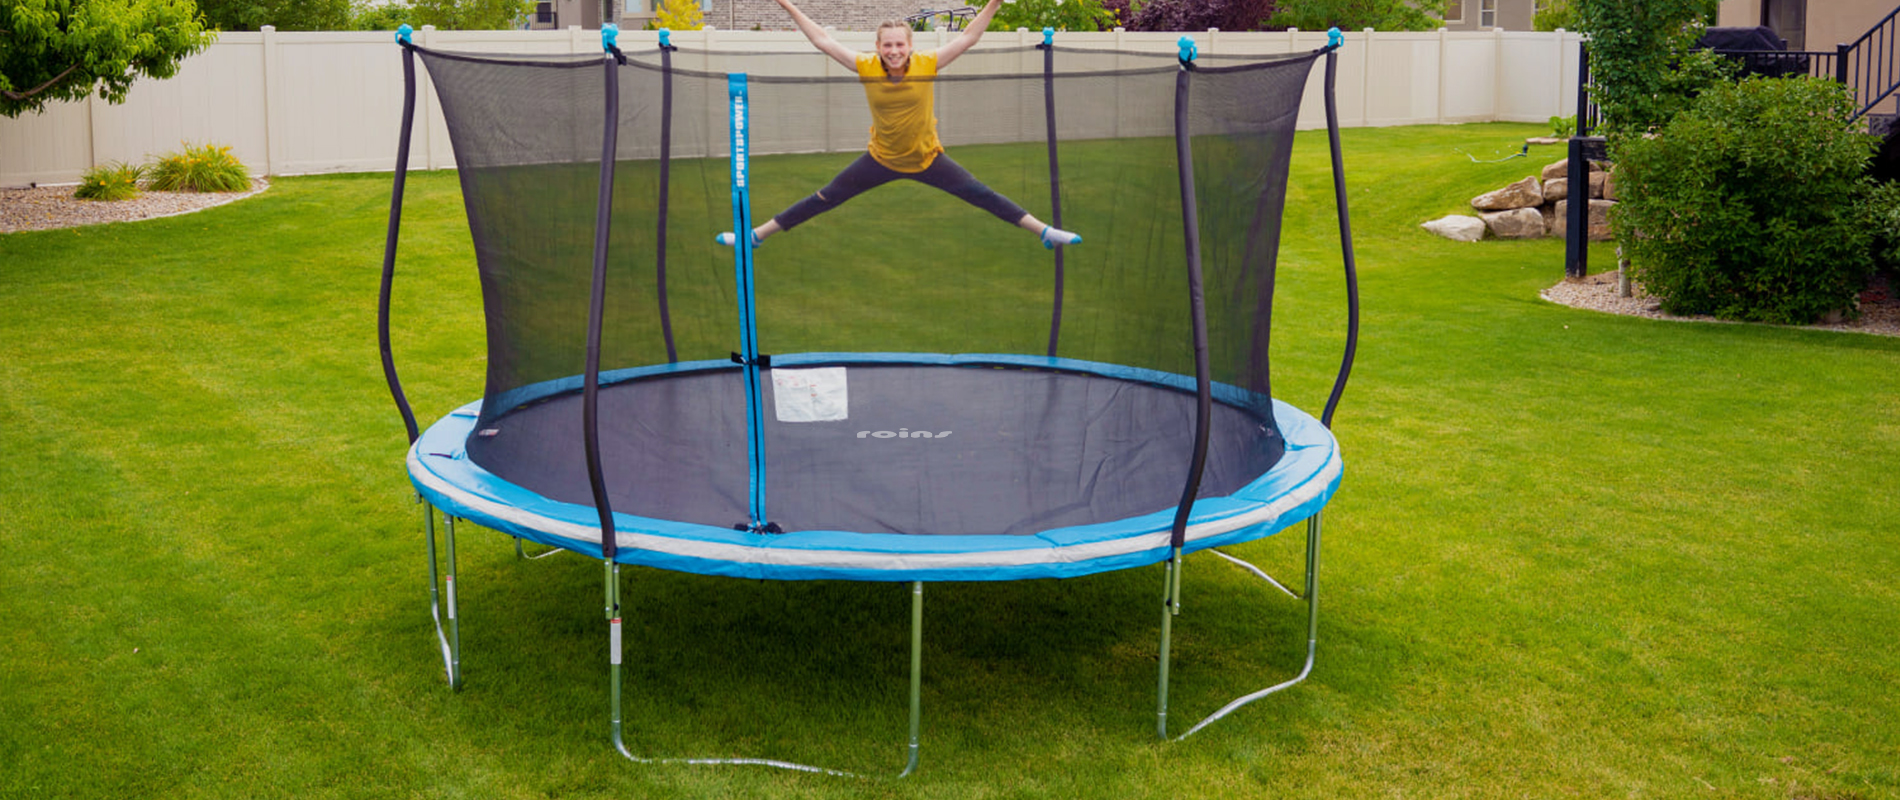 what trampoline should I buy